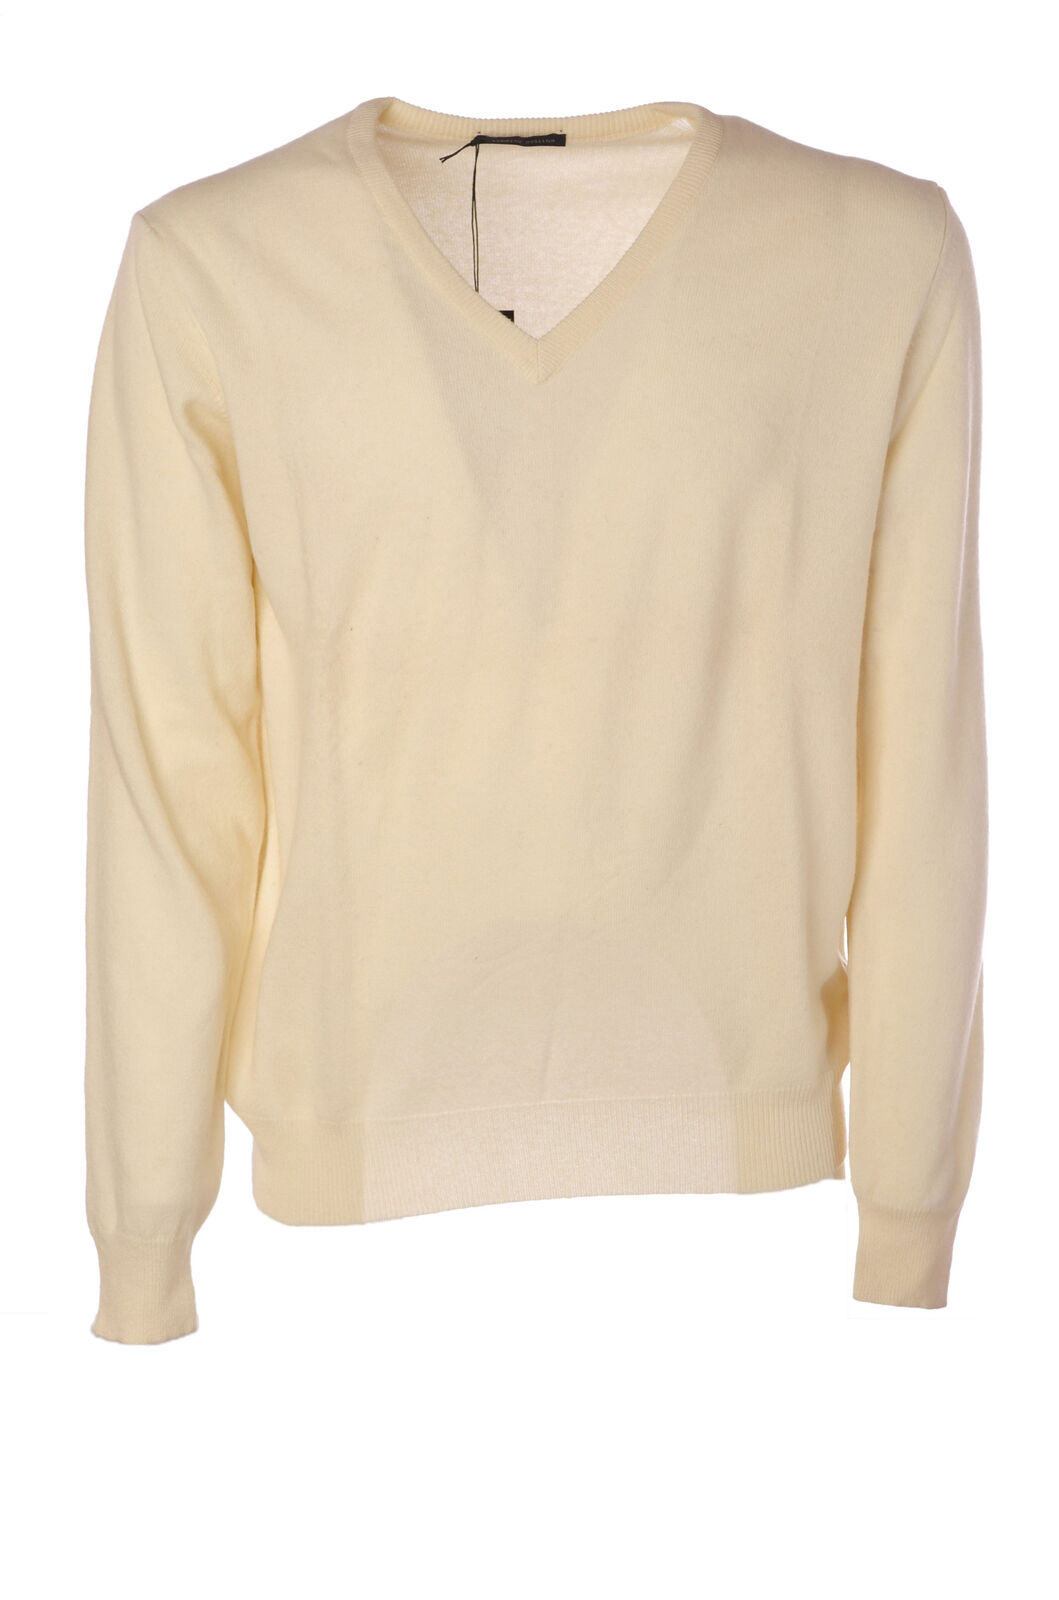 Roberto Collina  -  Sweaters - Male - White - 2845329N173601